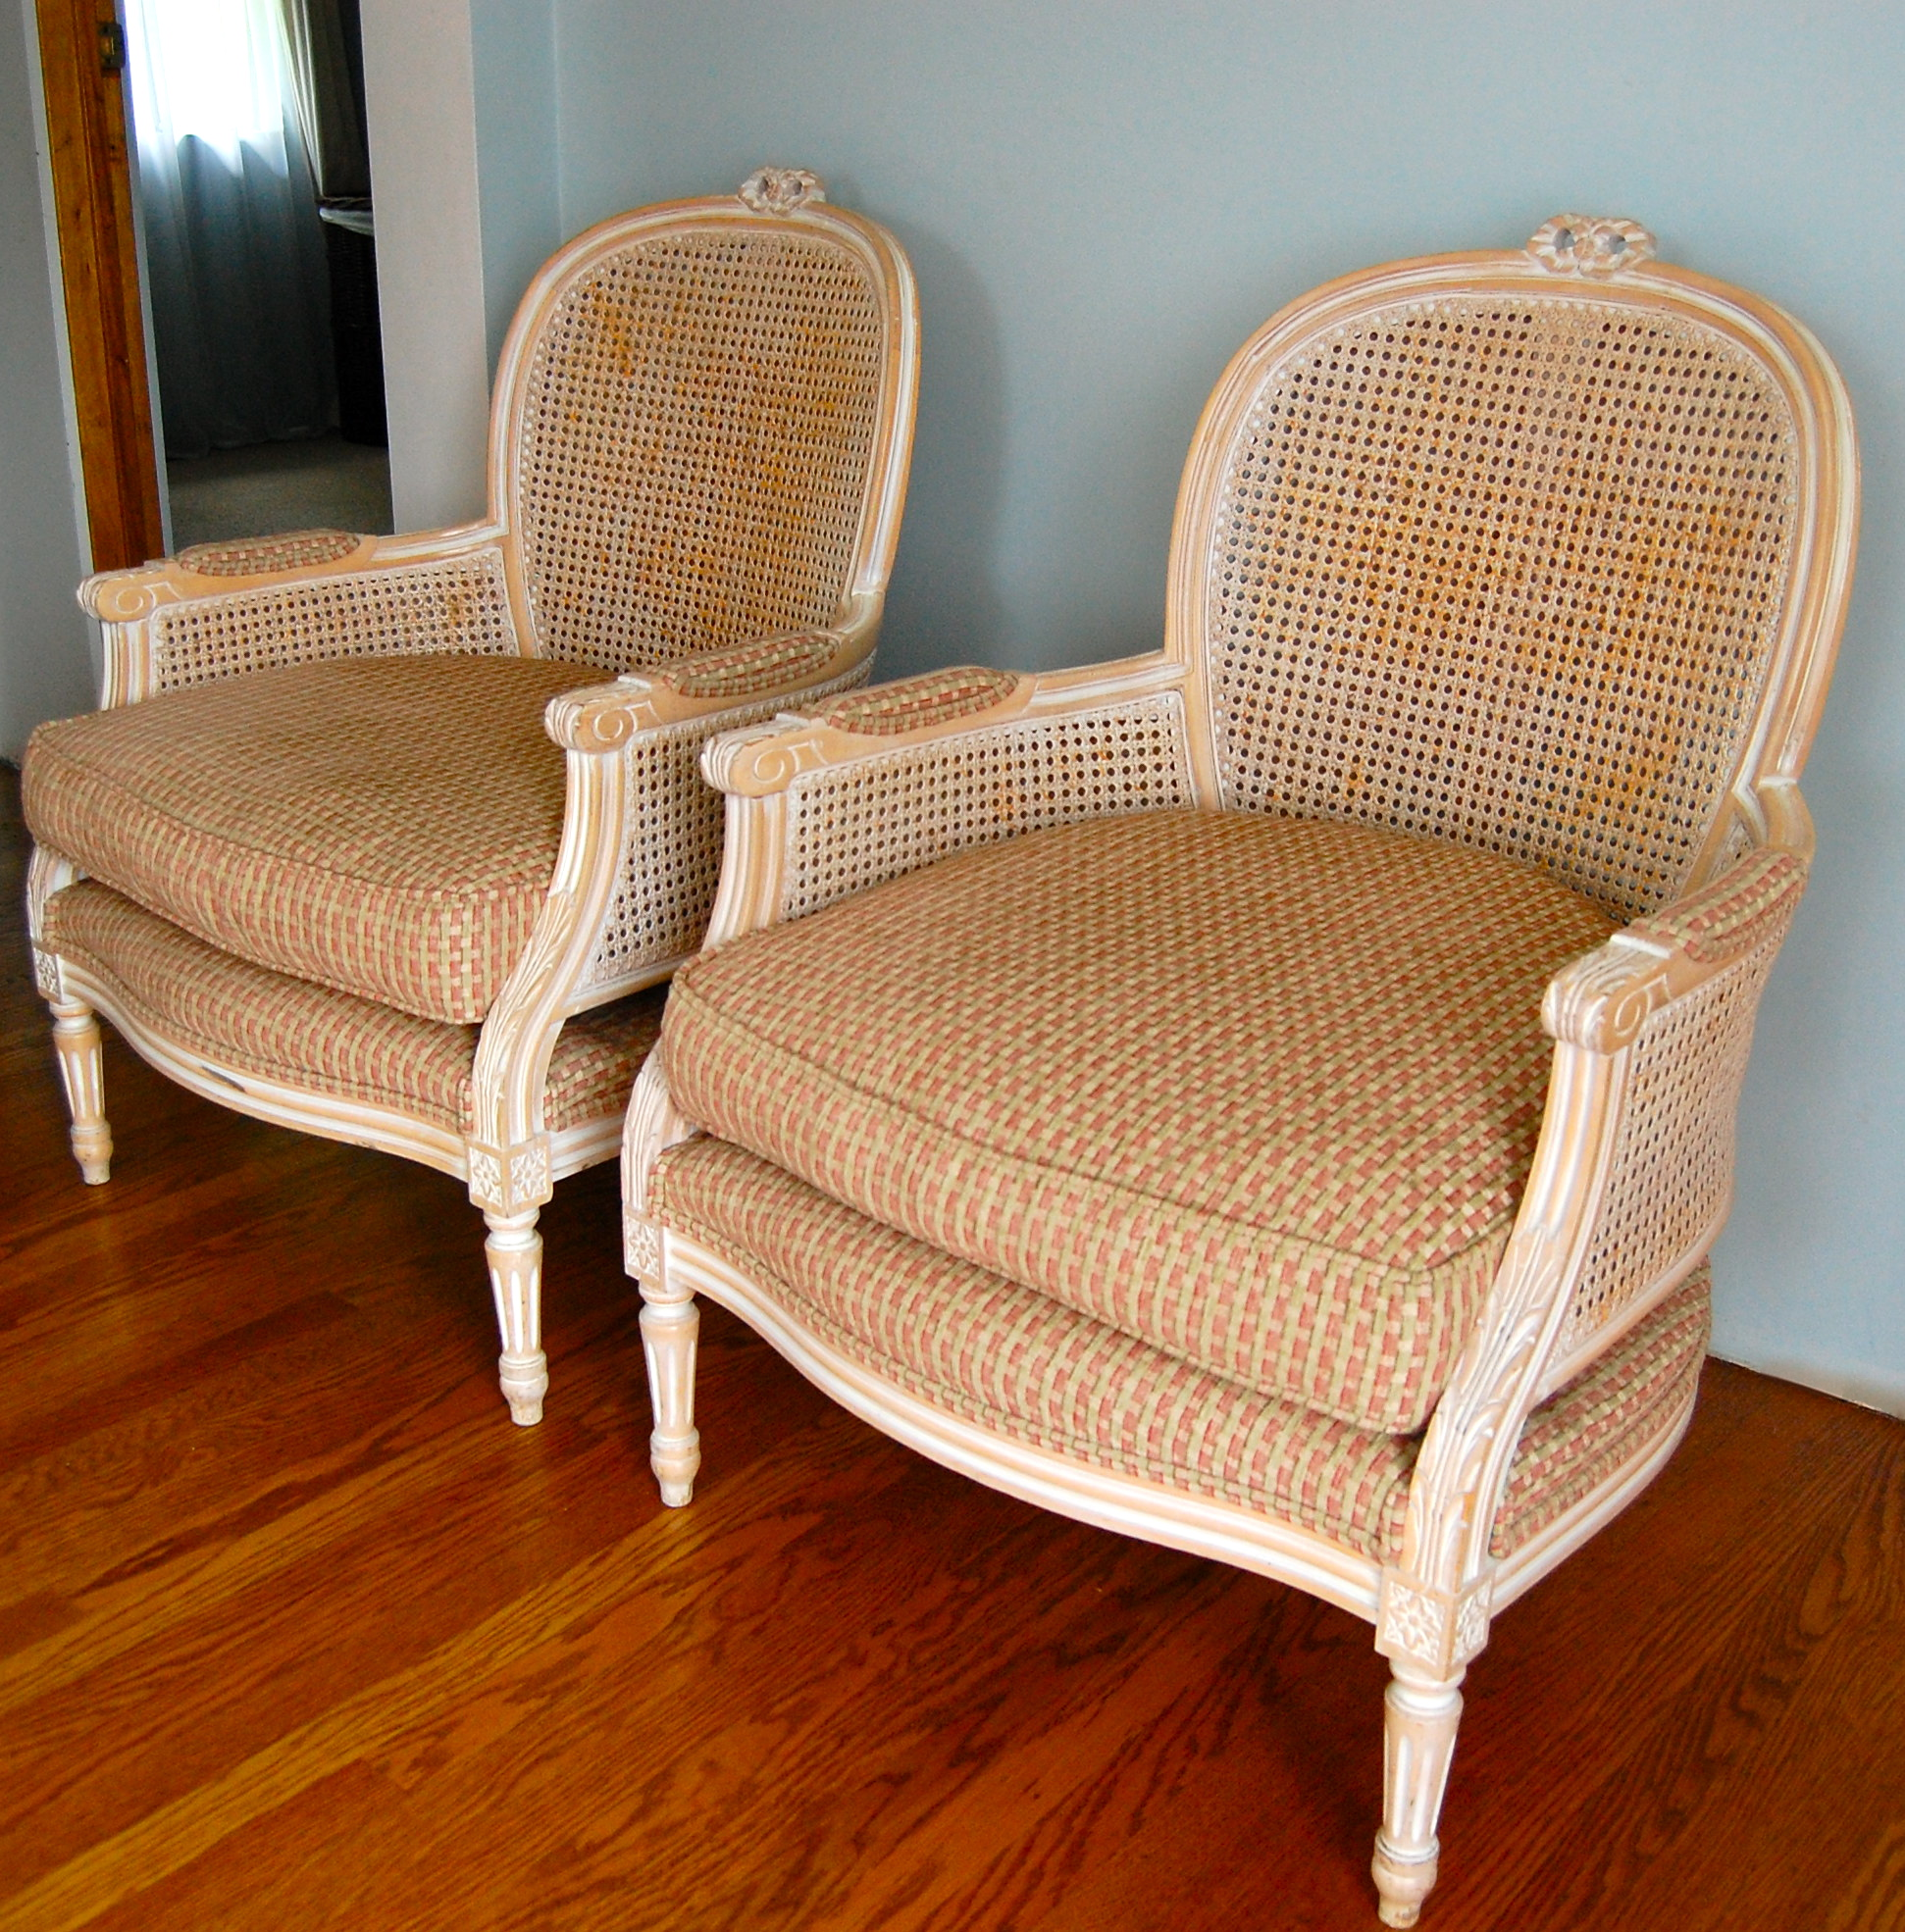 Bergere Chair Decor For Living Room (View 3 of 7)